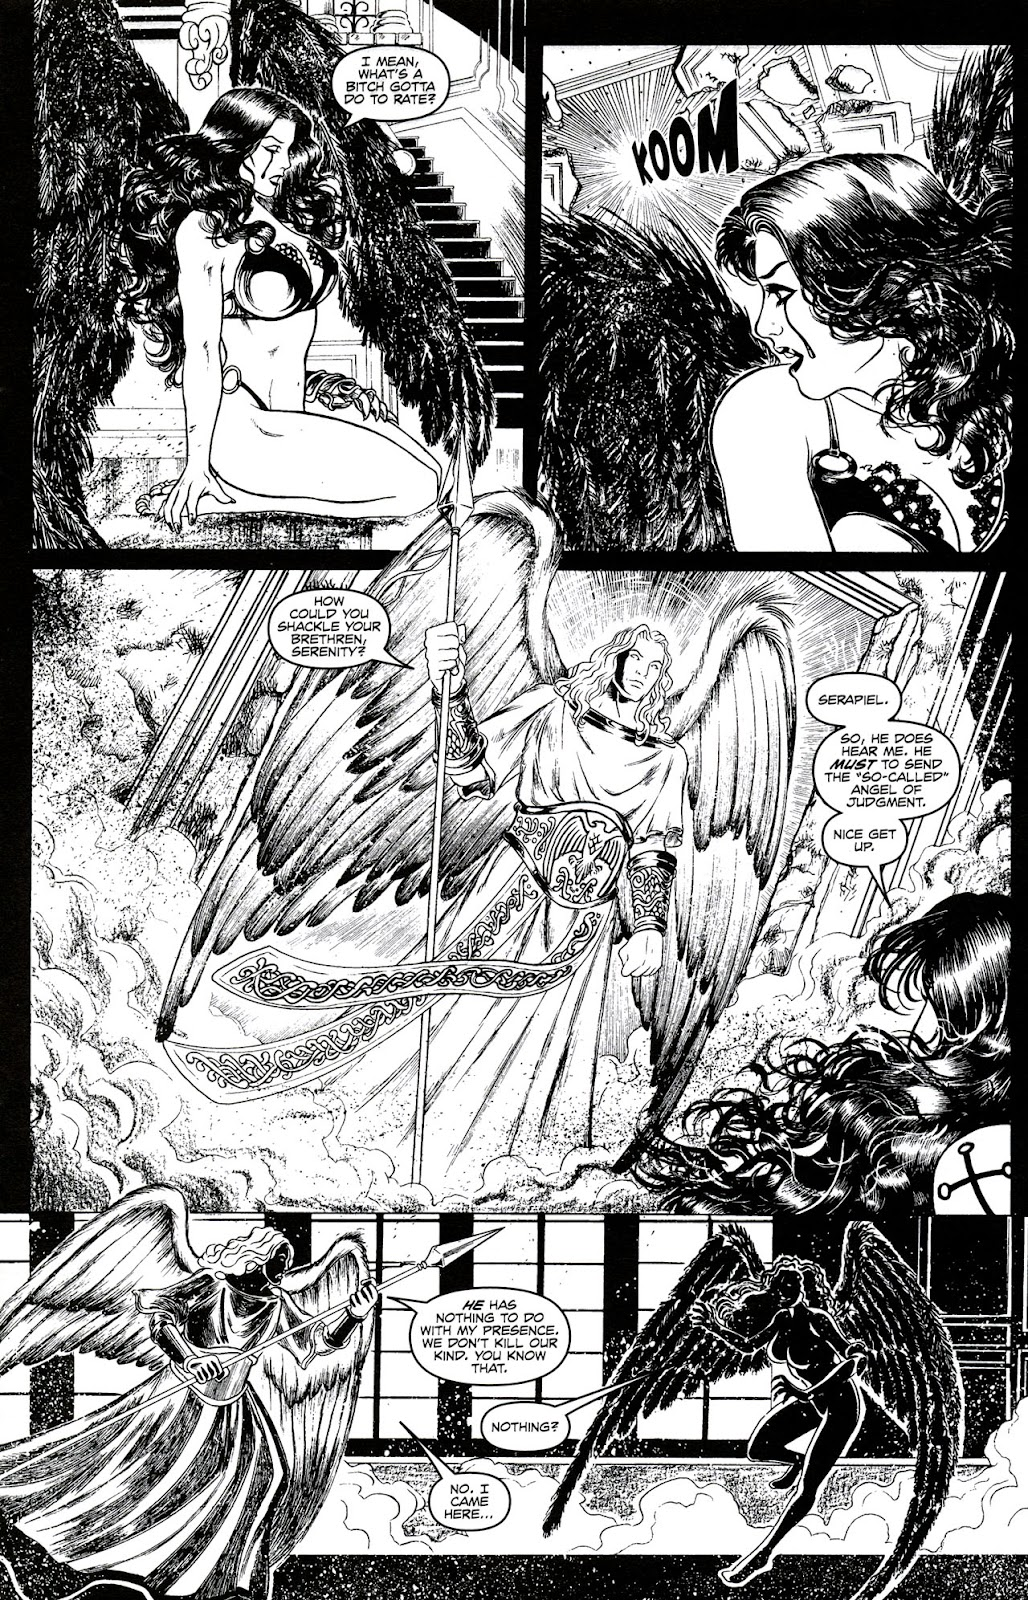 Read online Brian Pulido's War Angel comic -  Issue #0 - 16